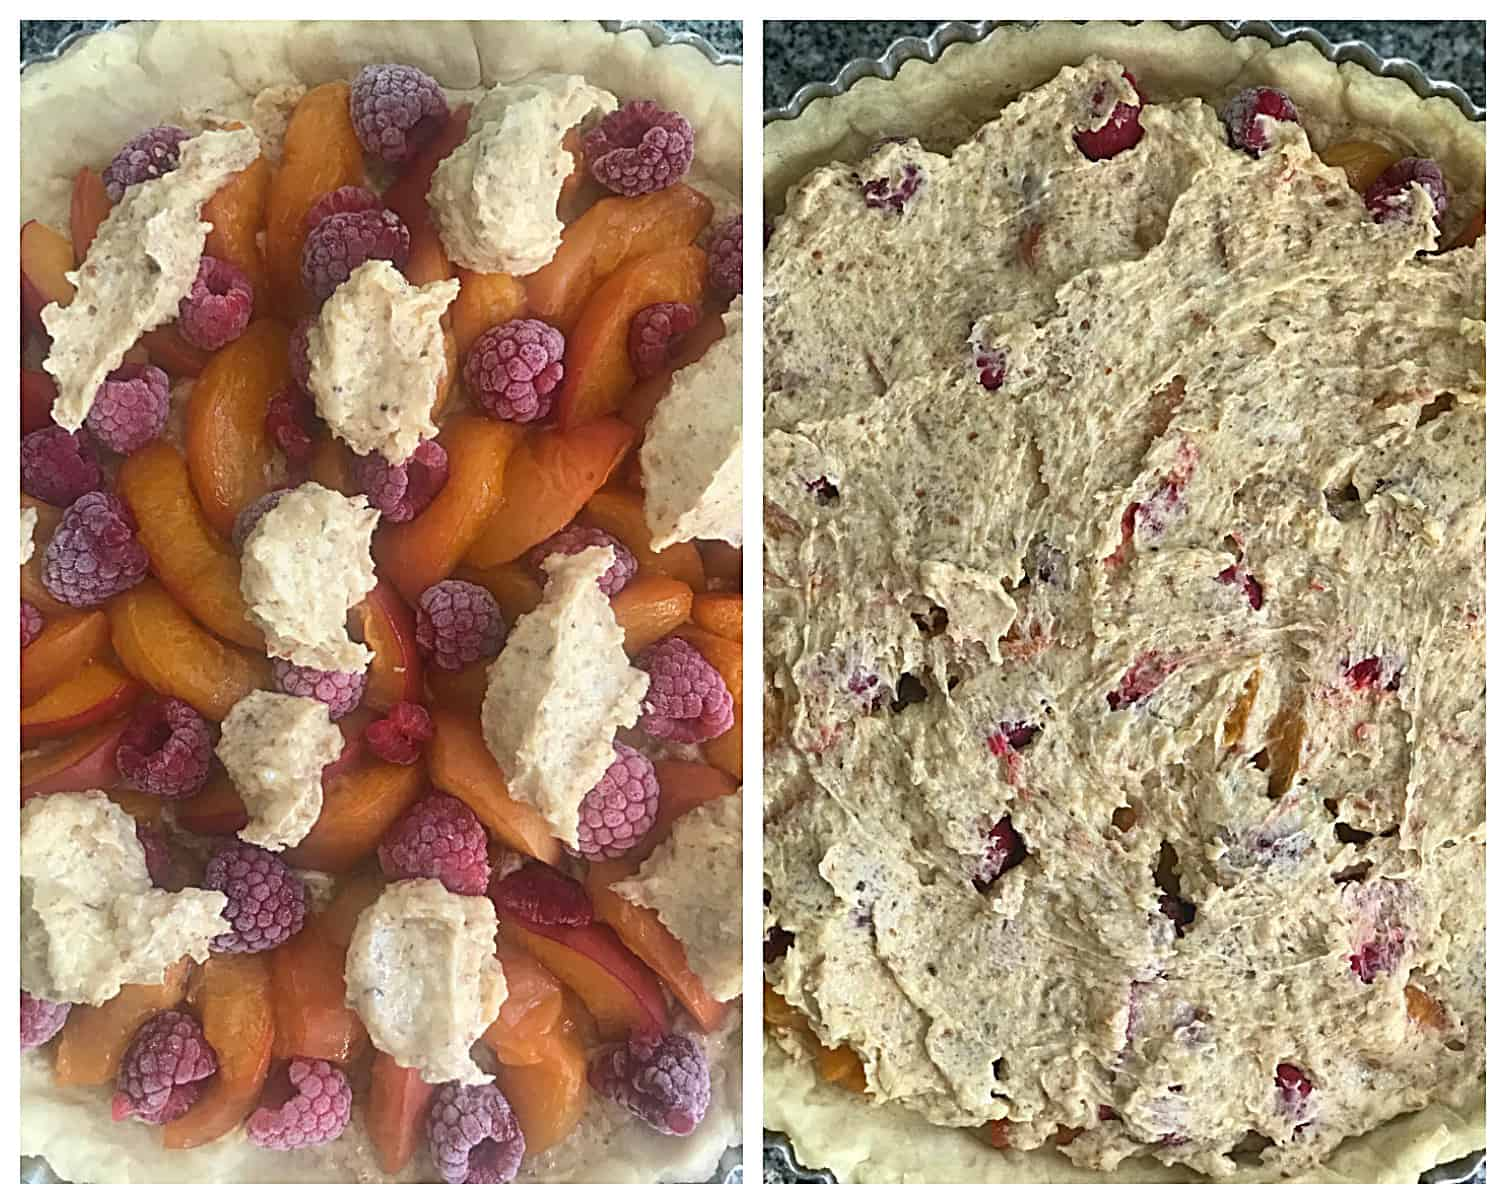 Image collage, slathering almond cream over unbaked apricot raspberry tart